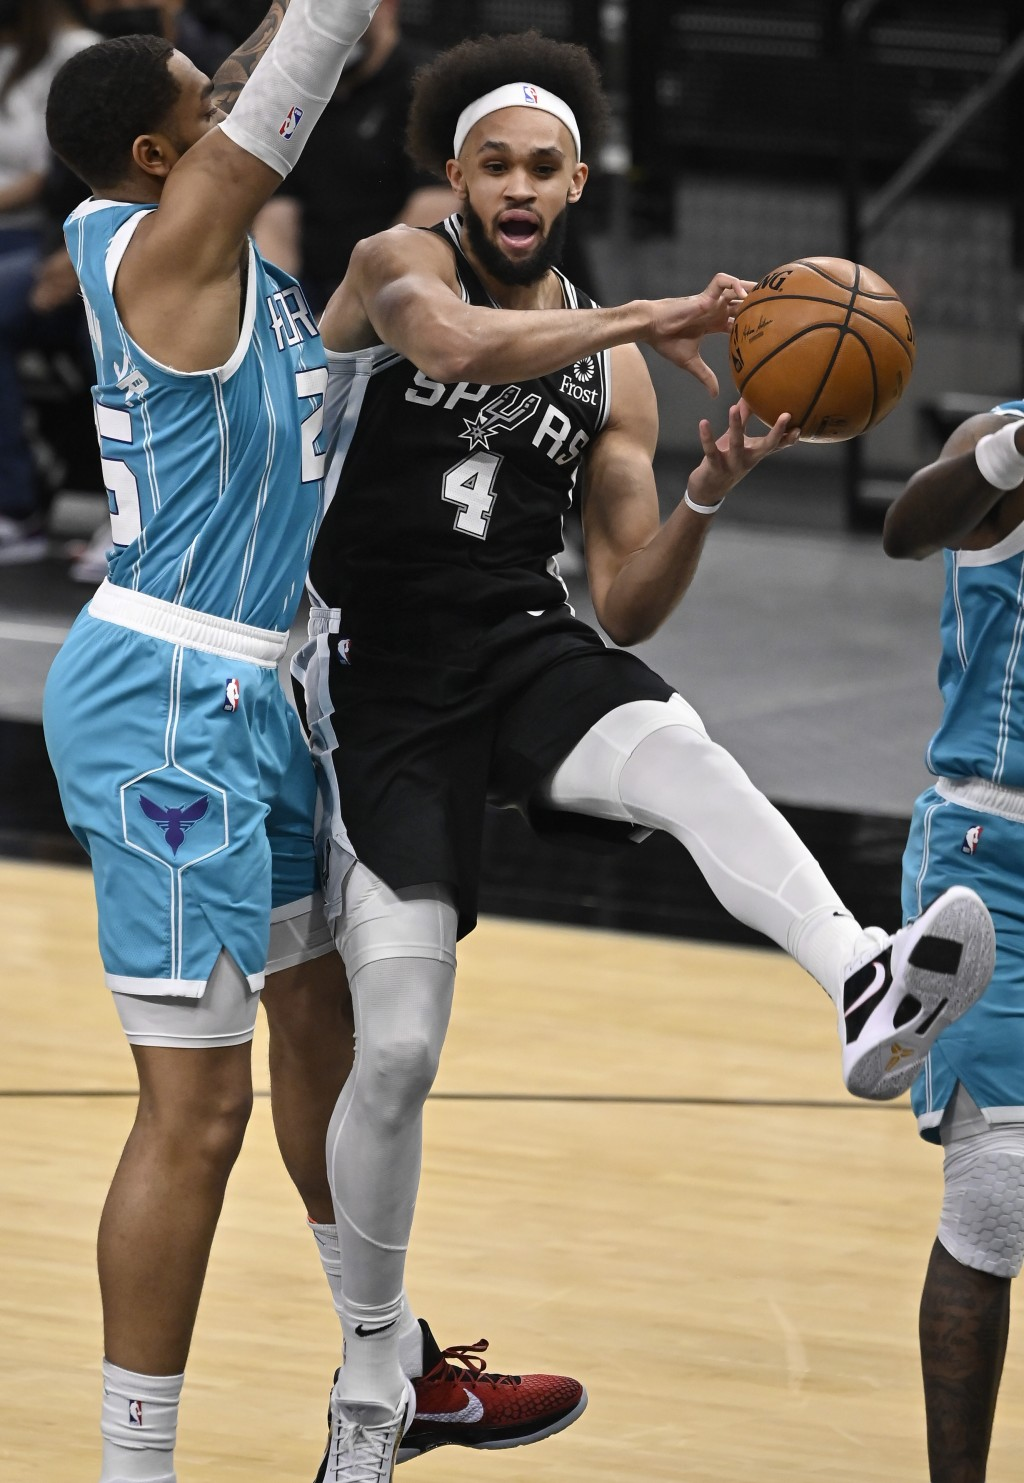 San Antonio Spurs' Derrick White (4) looks to pass as he is defended by Charlotte Hornets' P.J. Washington during the first half of an NBA basketball ...